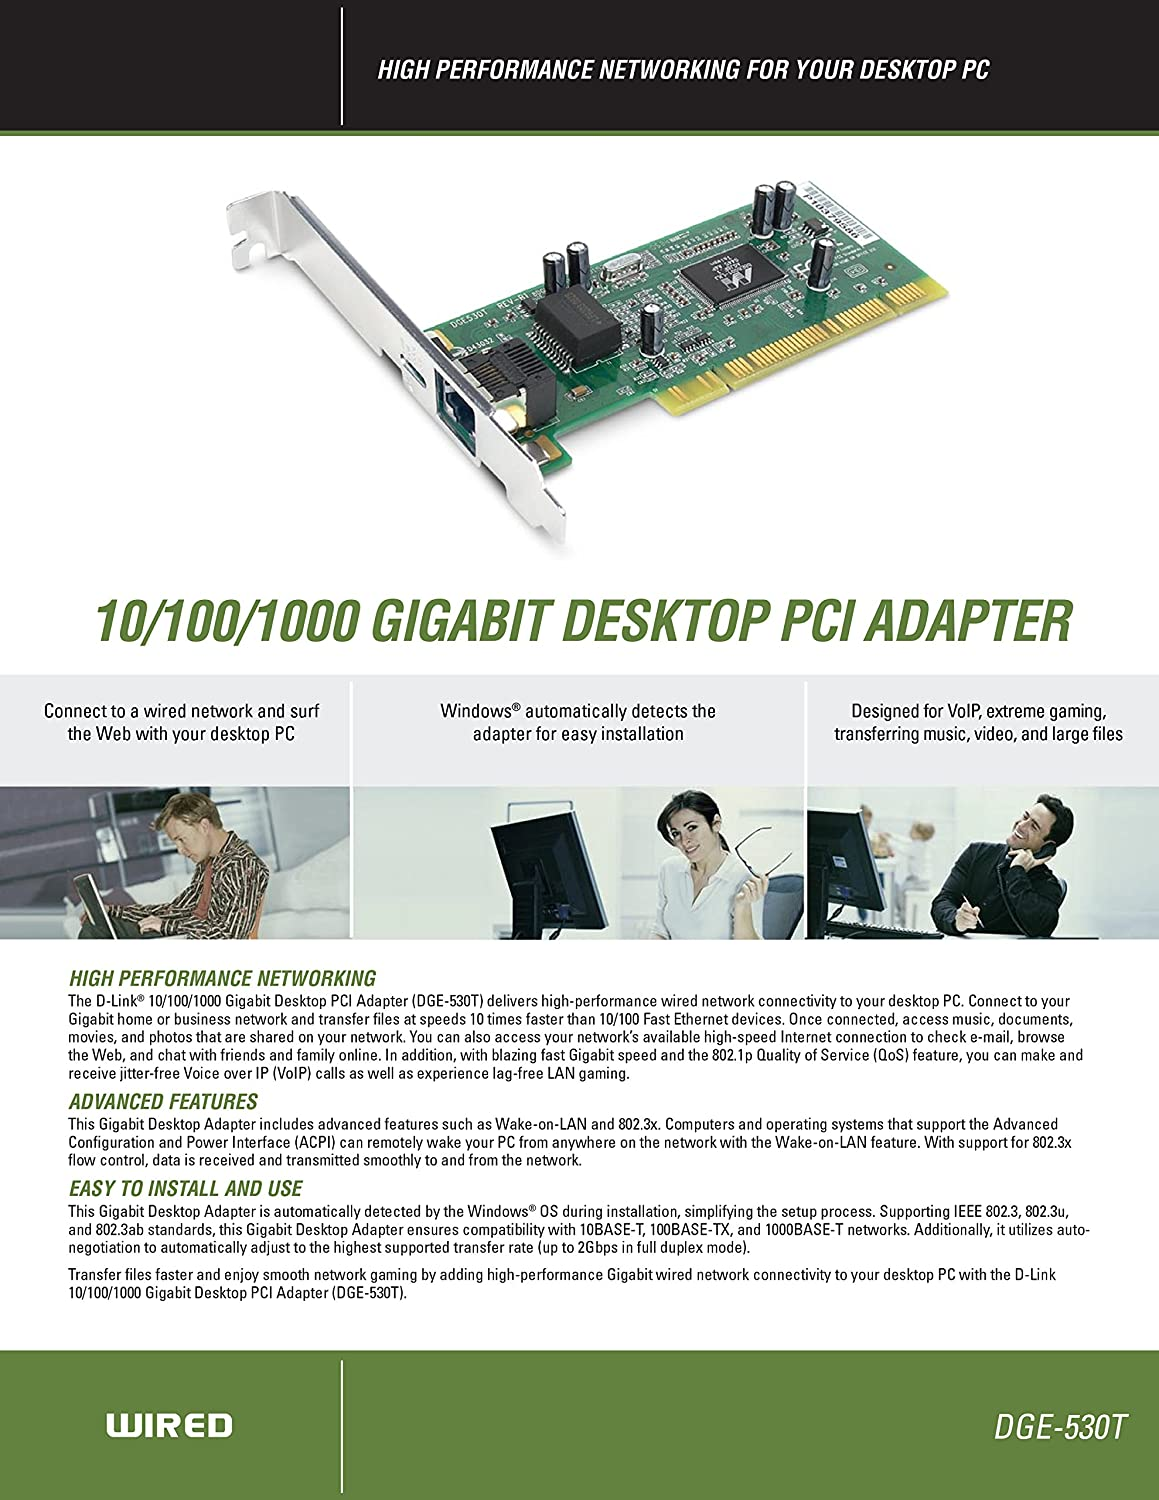 Amazon.com: D-Link DGE-530T 10/100/1000 Gigabit Desktop Adapter: Computers & Accessories